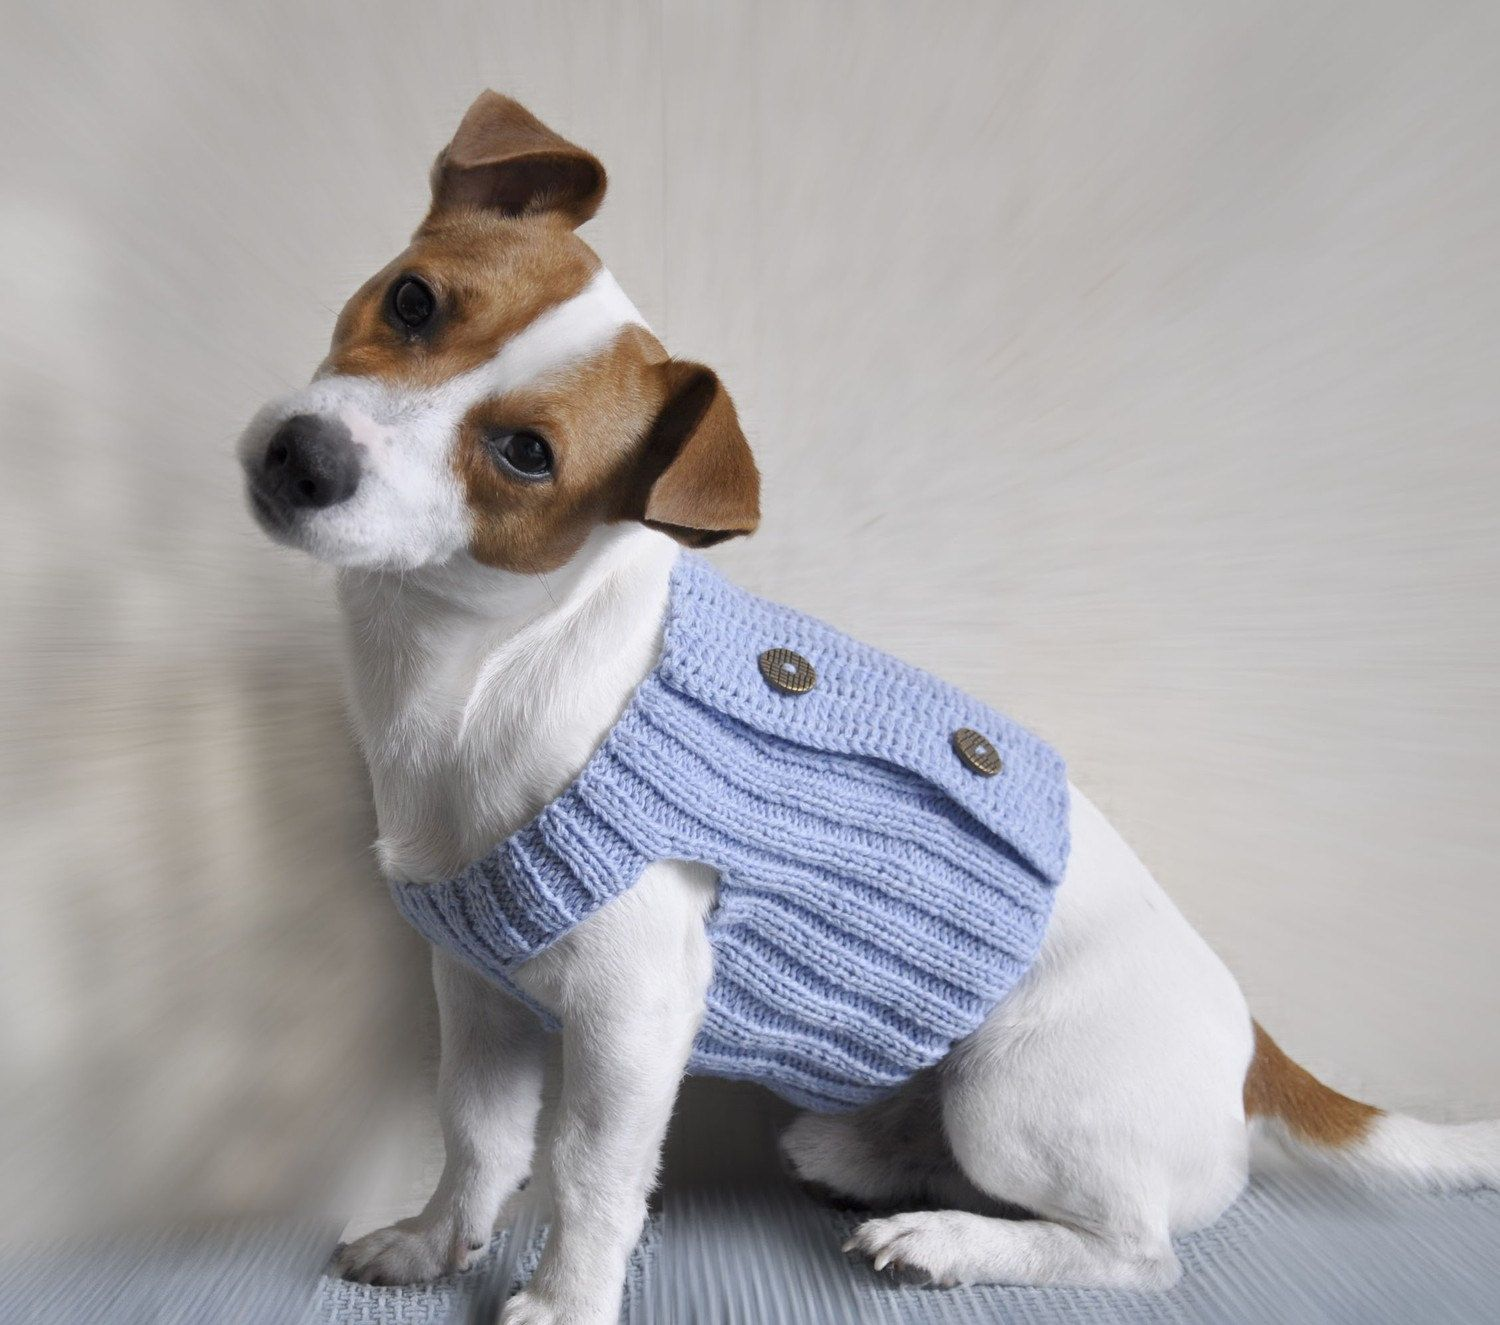 Knitting Coats For Dogs : Knitting pattern dog sweater knit